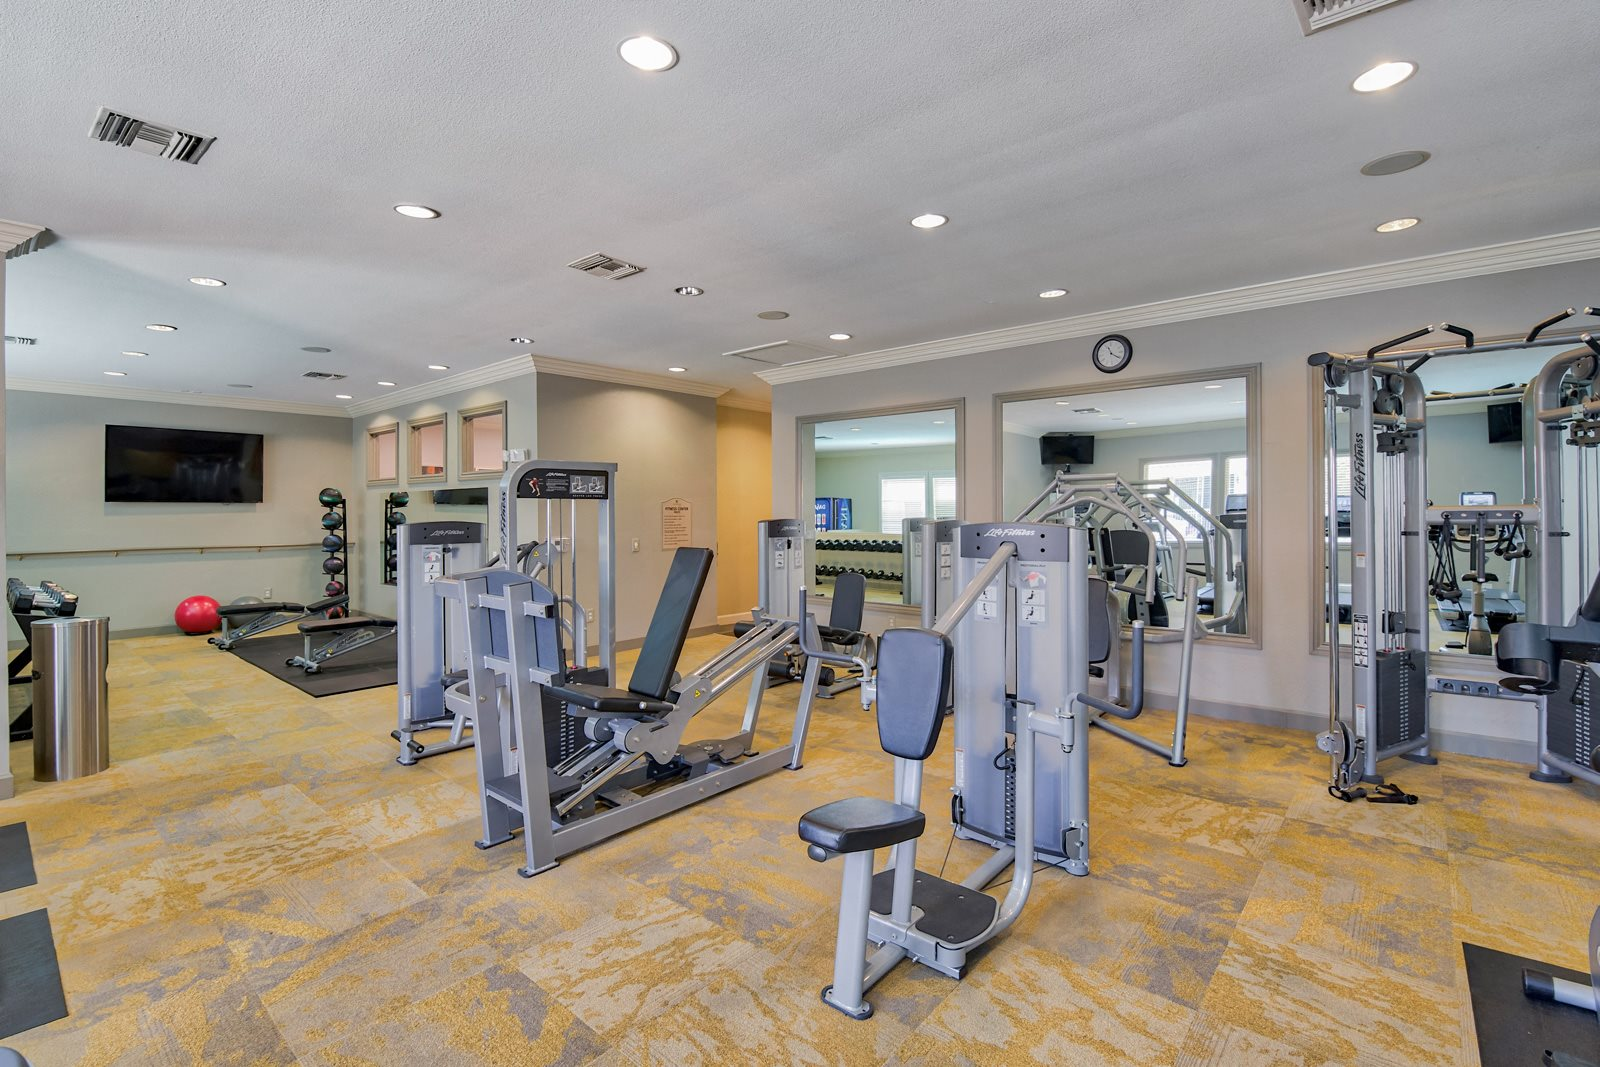 State-of-the-Art Fitness Center with Weight Machines at Windsor at Aviara, Carlsbad, 92011